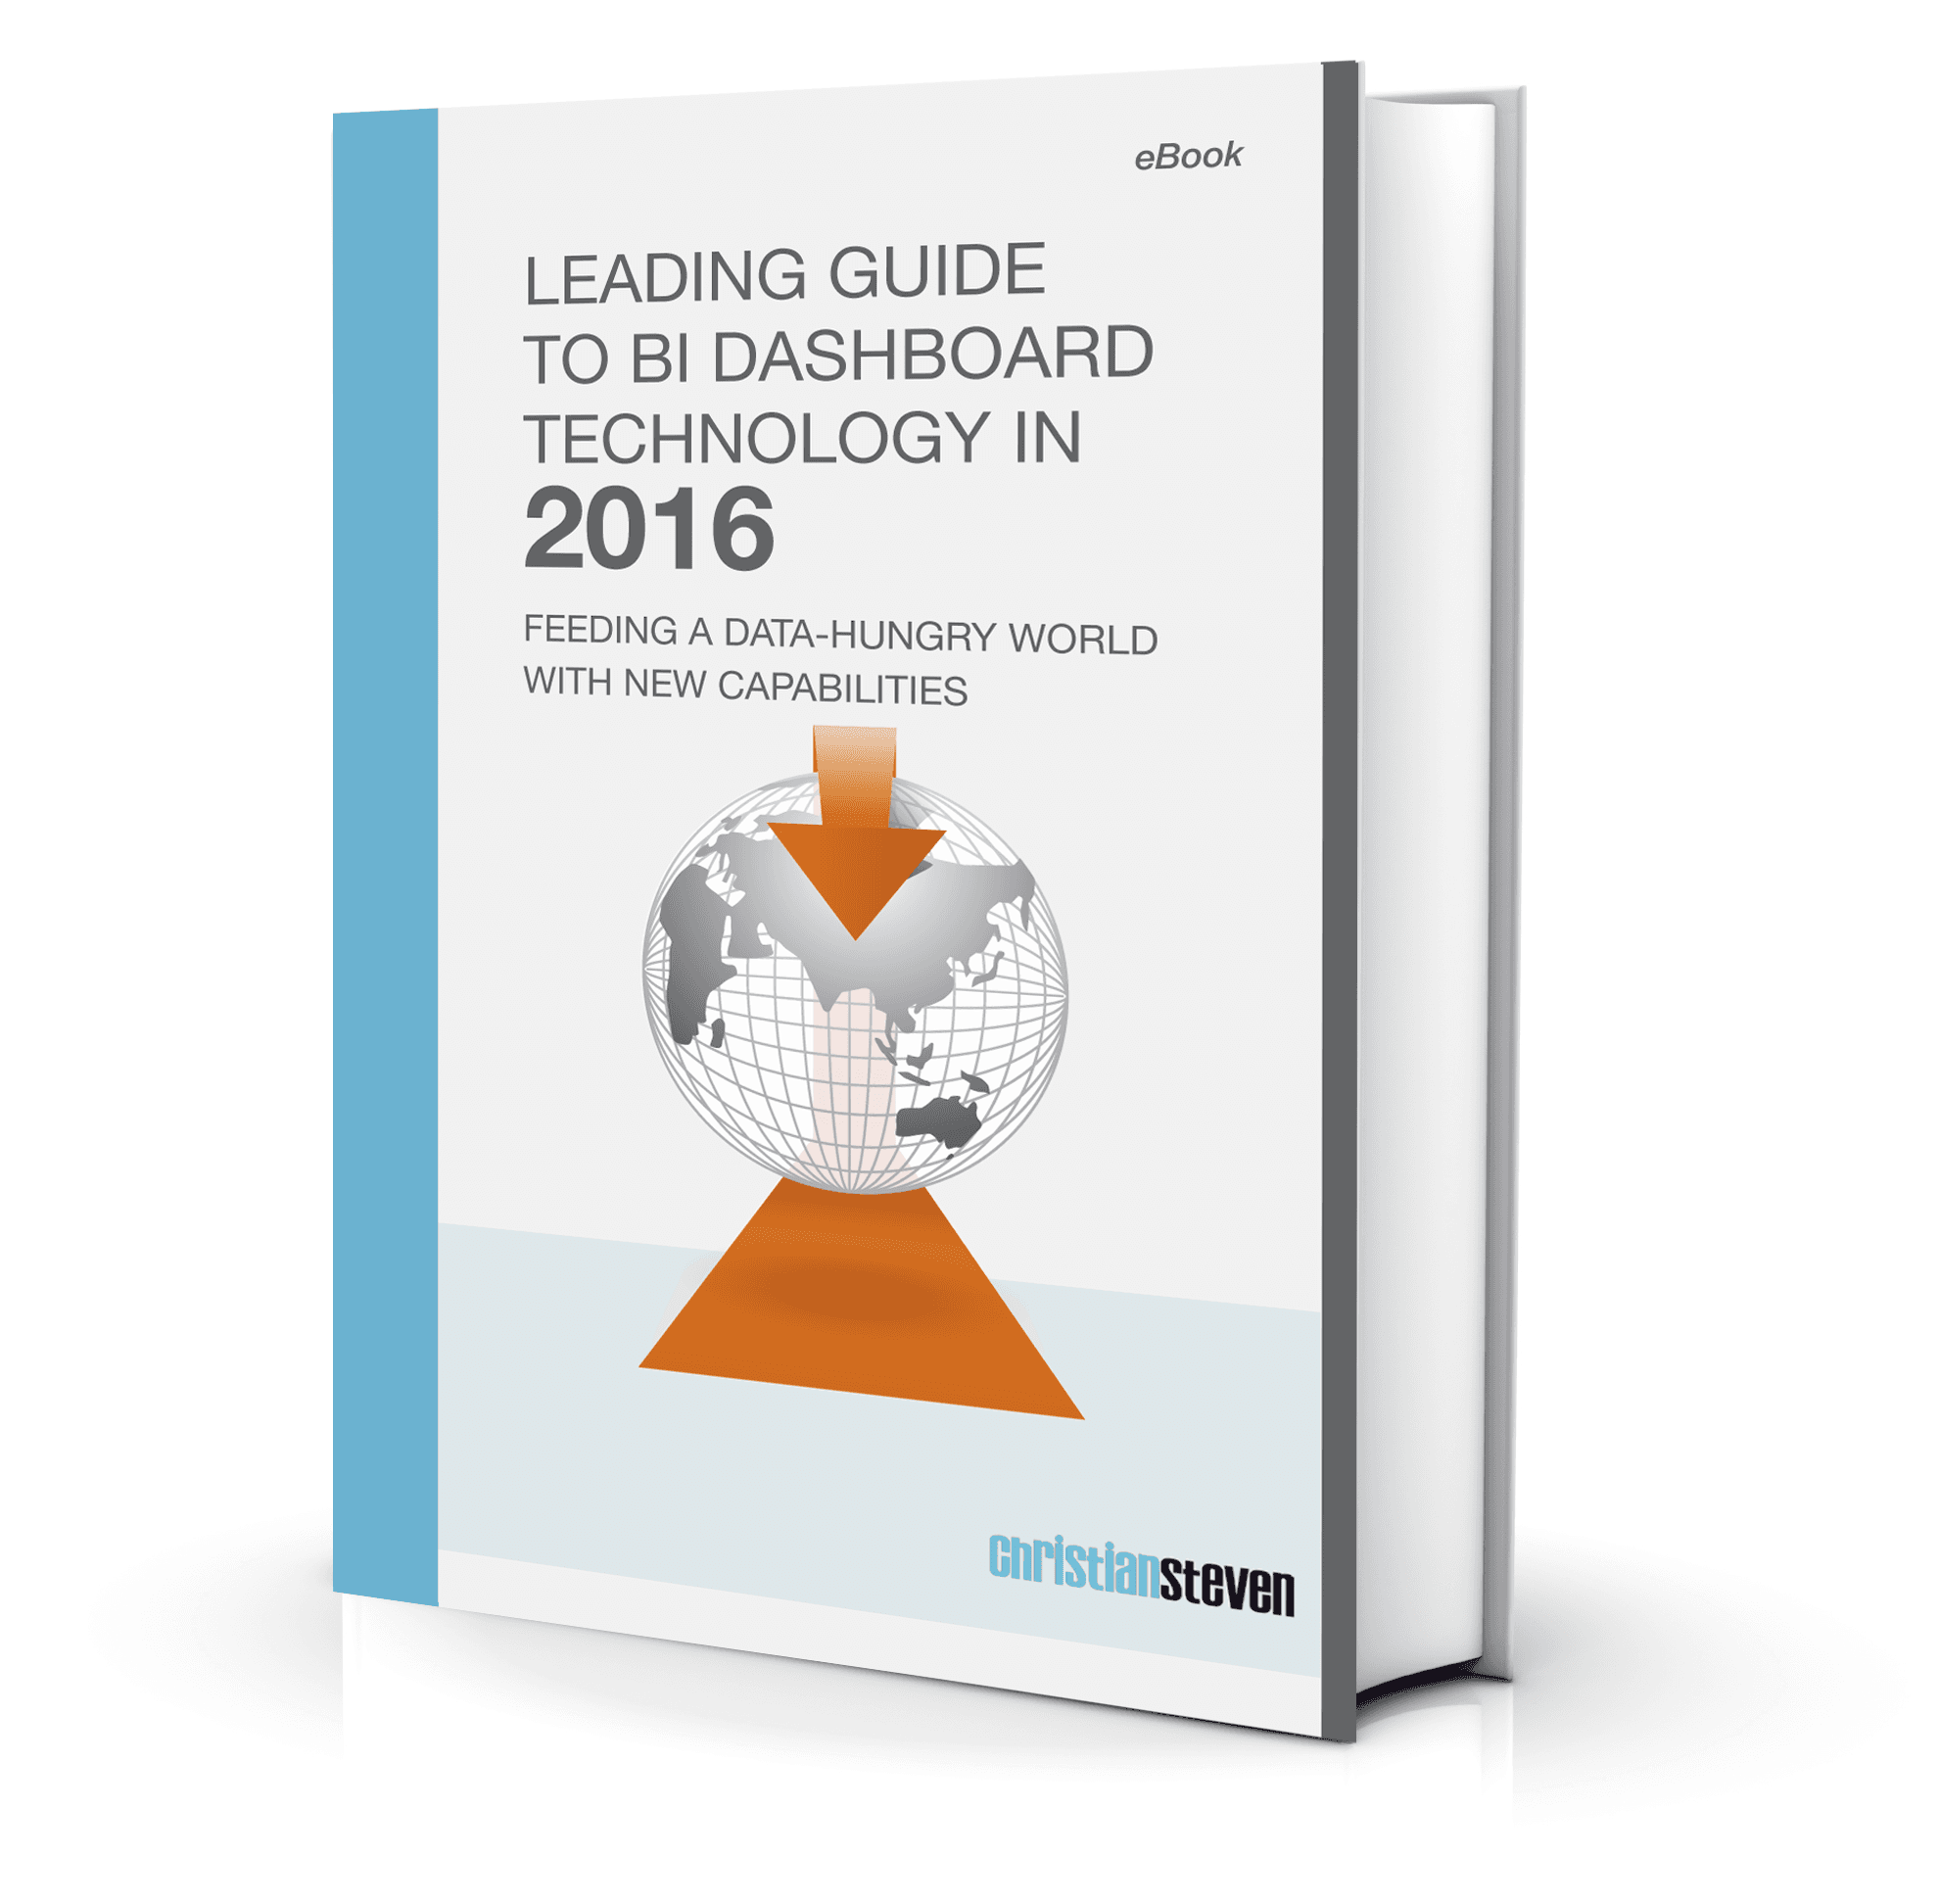 Guide to BI Dashboard Technology